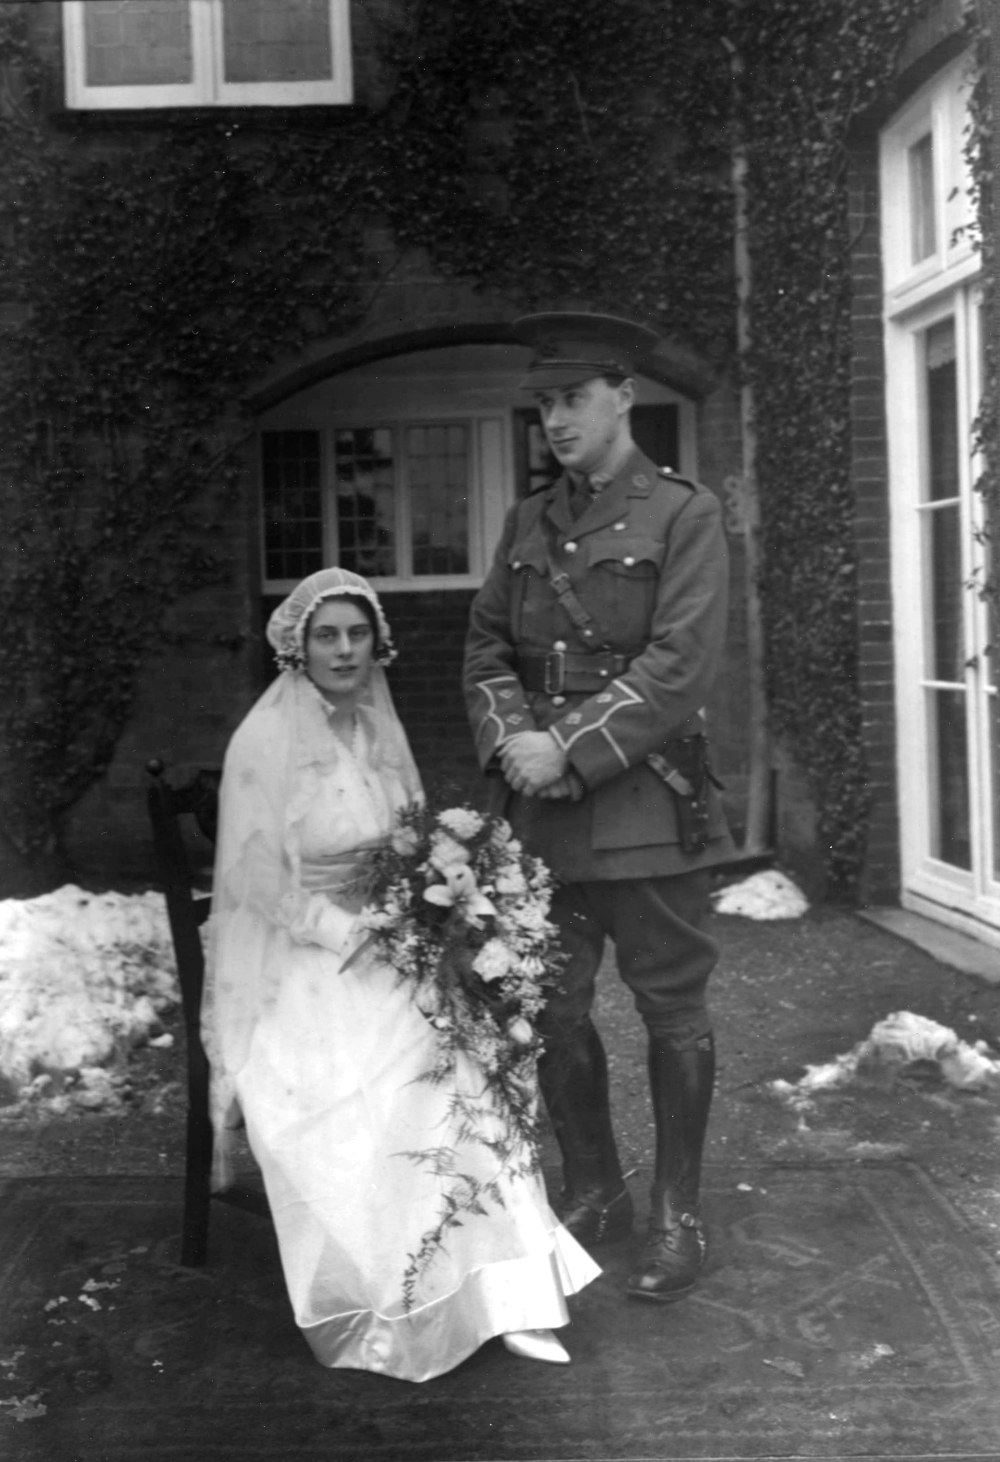 Alexander Wilson in First World War officer's uniform on his wedding day with Gladys in 1916. Image: (c) Alexander Wilson Estate. All rights reserved.